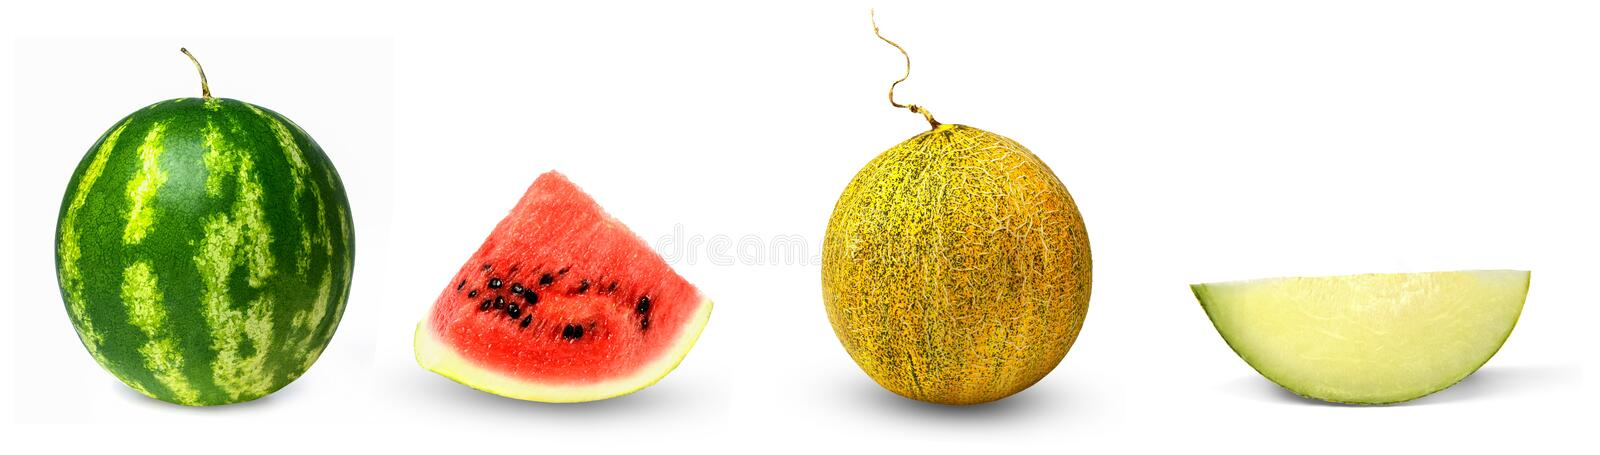 Set of watermelon and melon. Whole and lobule. Isolation on a white background. Bright saturated colors and good texture. Side view royalty free stock photos